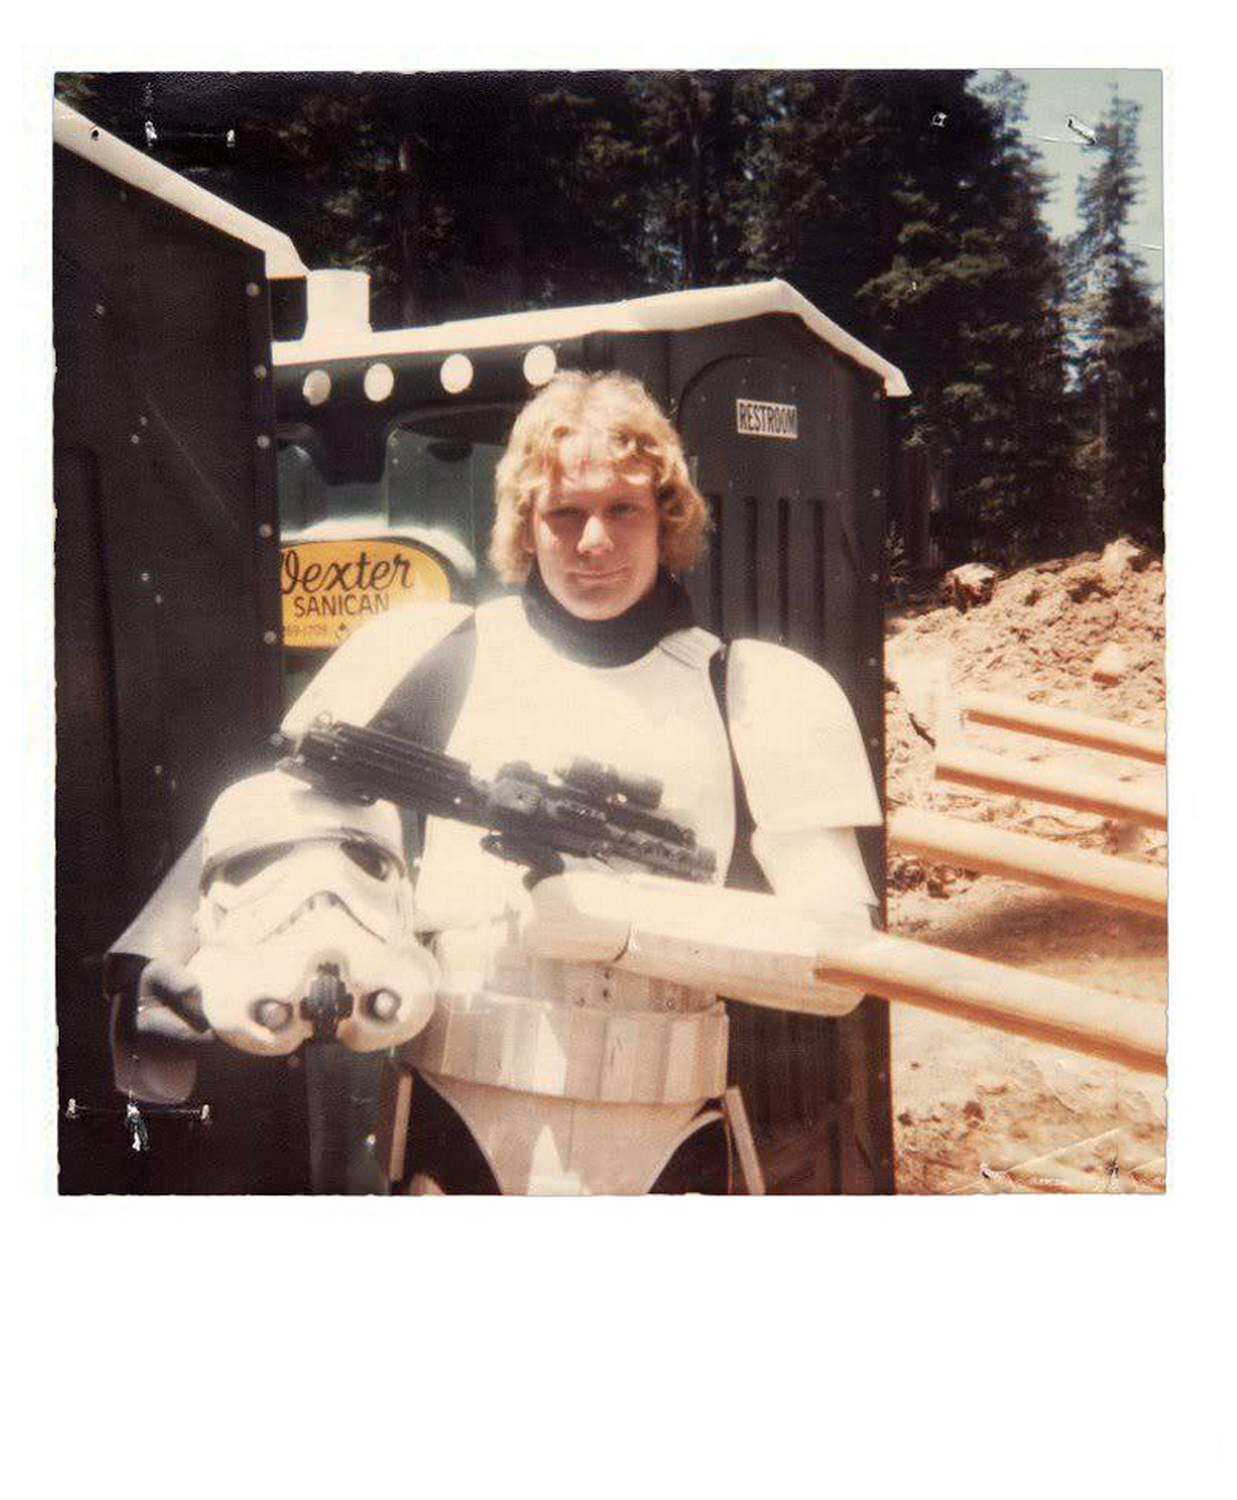 Stormtrooper on the set of Return of the Jedi